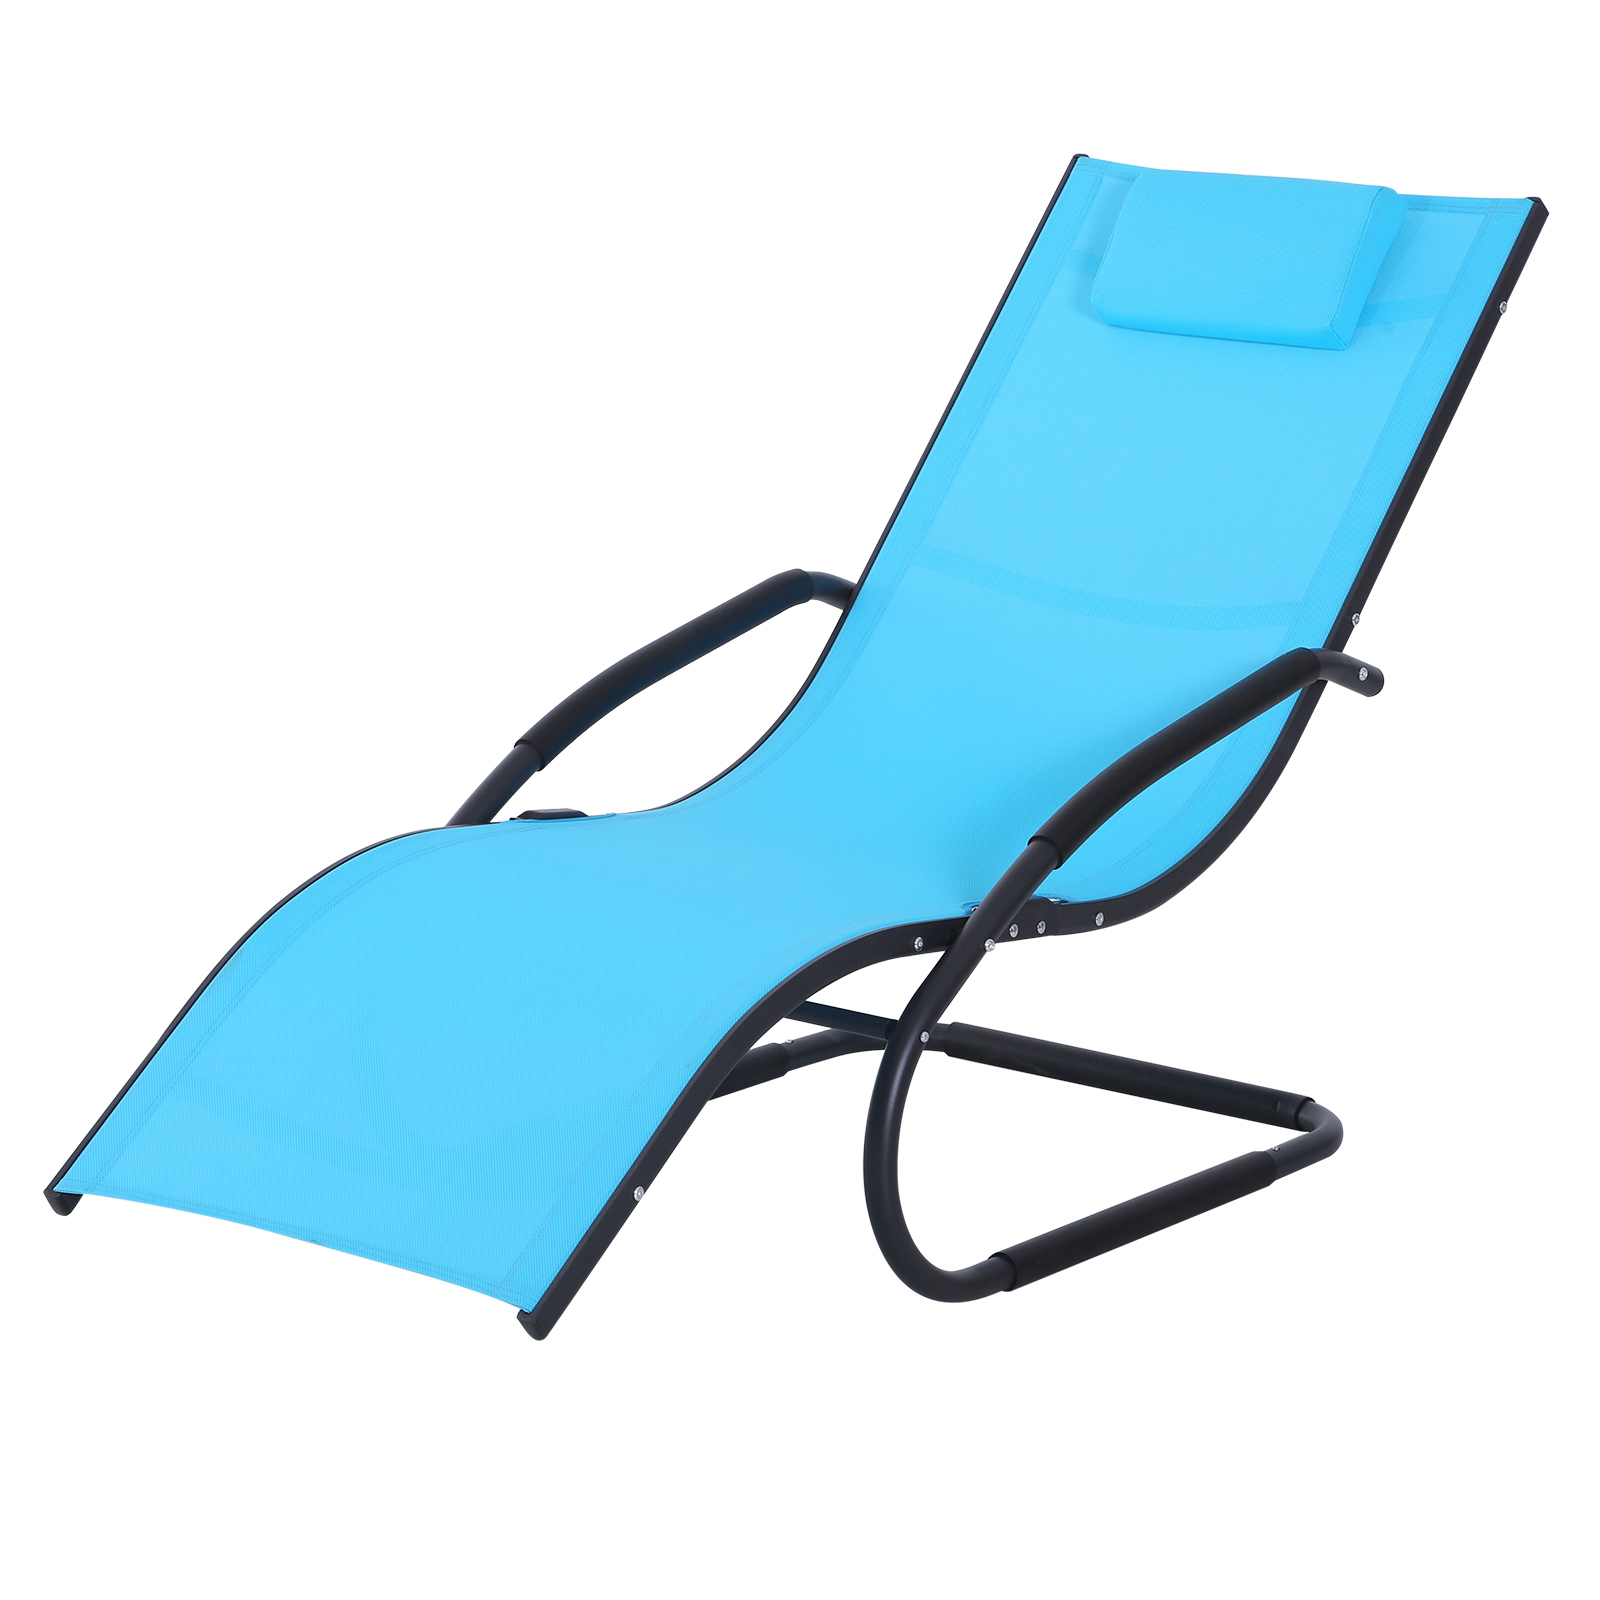 Outsunny Chair Lounger Garden Design Ergonomic Headrest Removable Fabric Outdoor 150x63x89 Cm Sky Blue